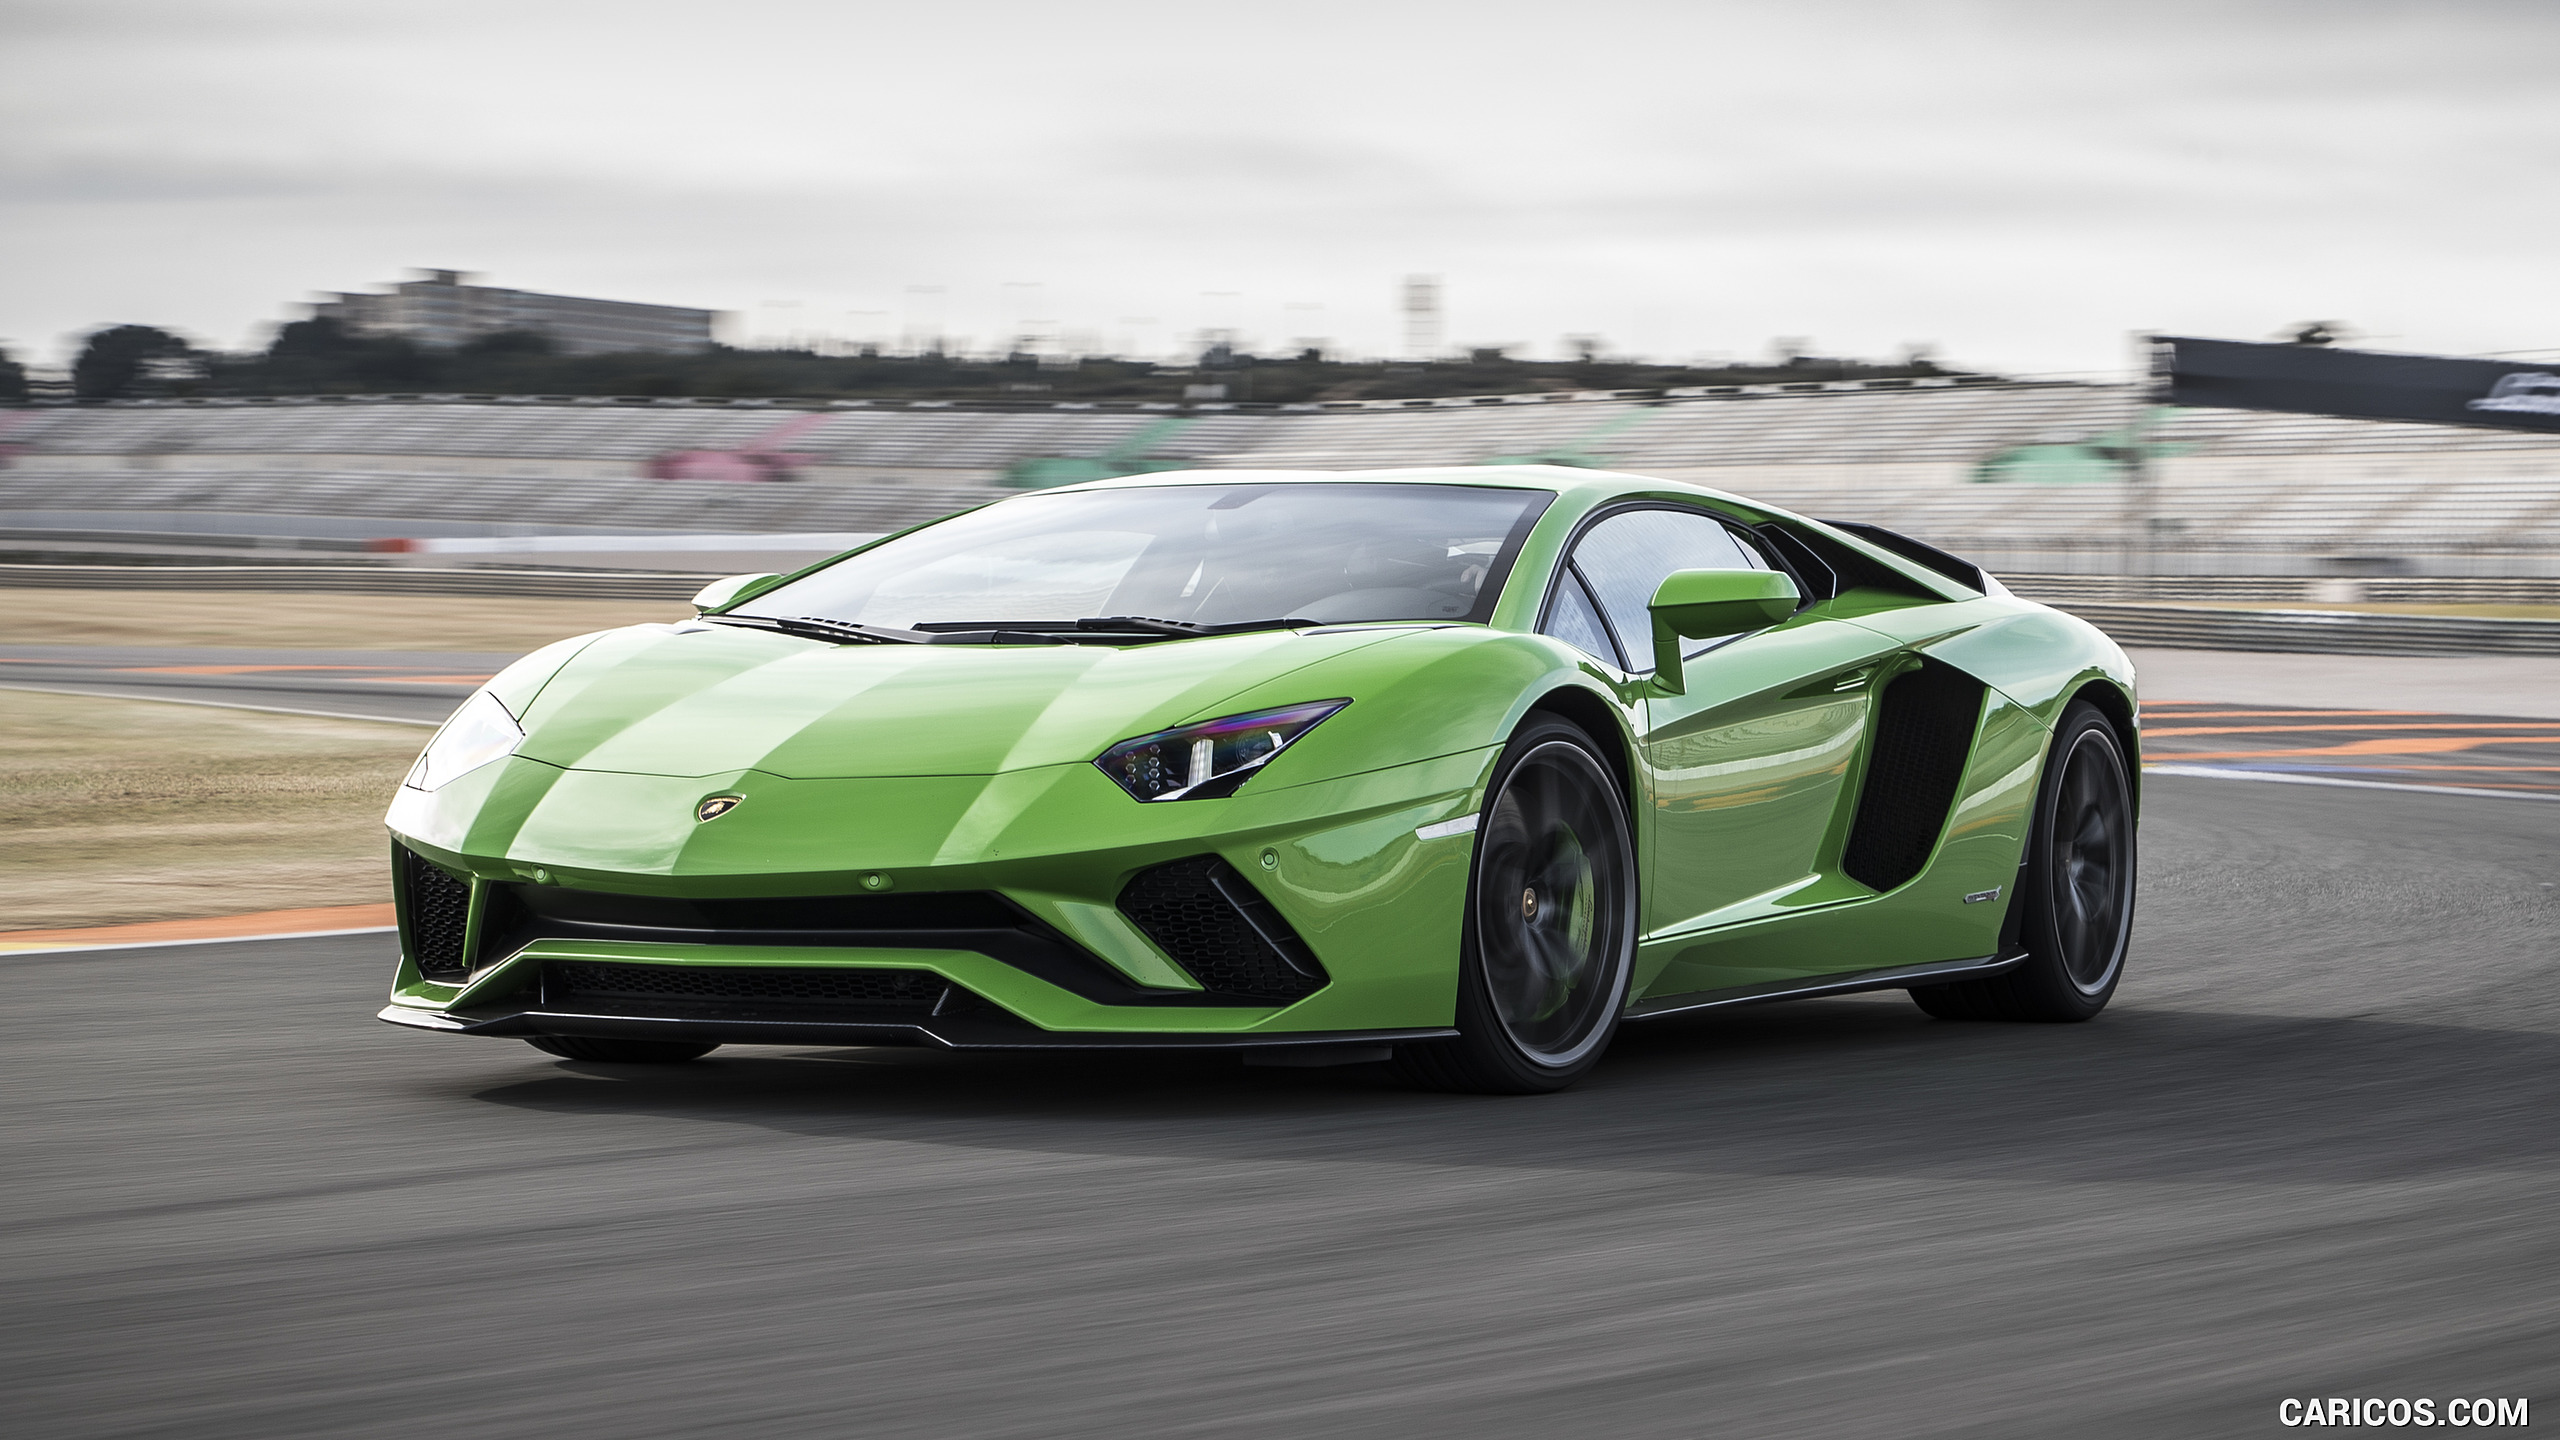 2017 Lamborghini Aventador S   Front Three Quarter HD Wallpaper 16 2560x1440